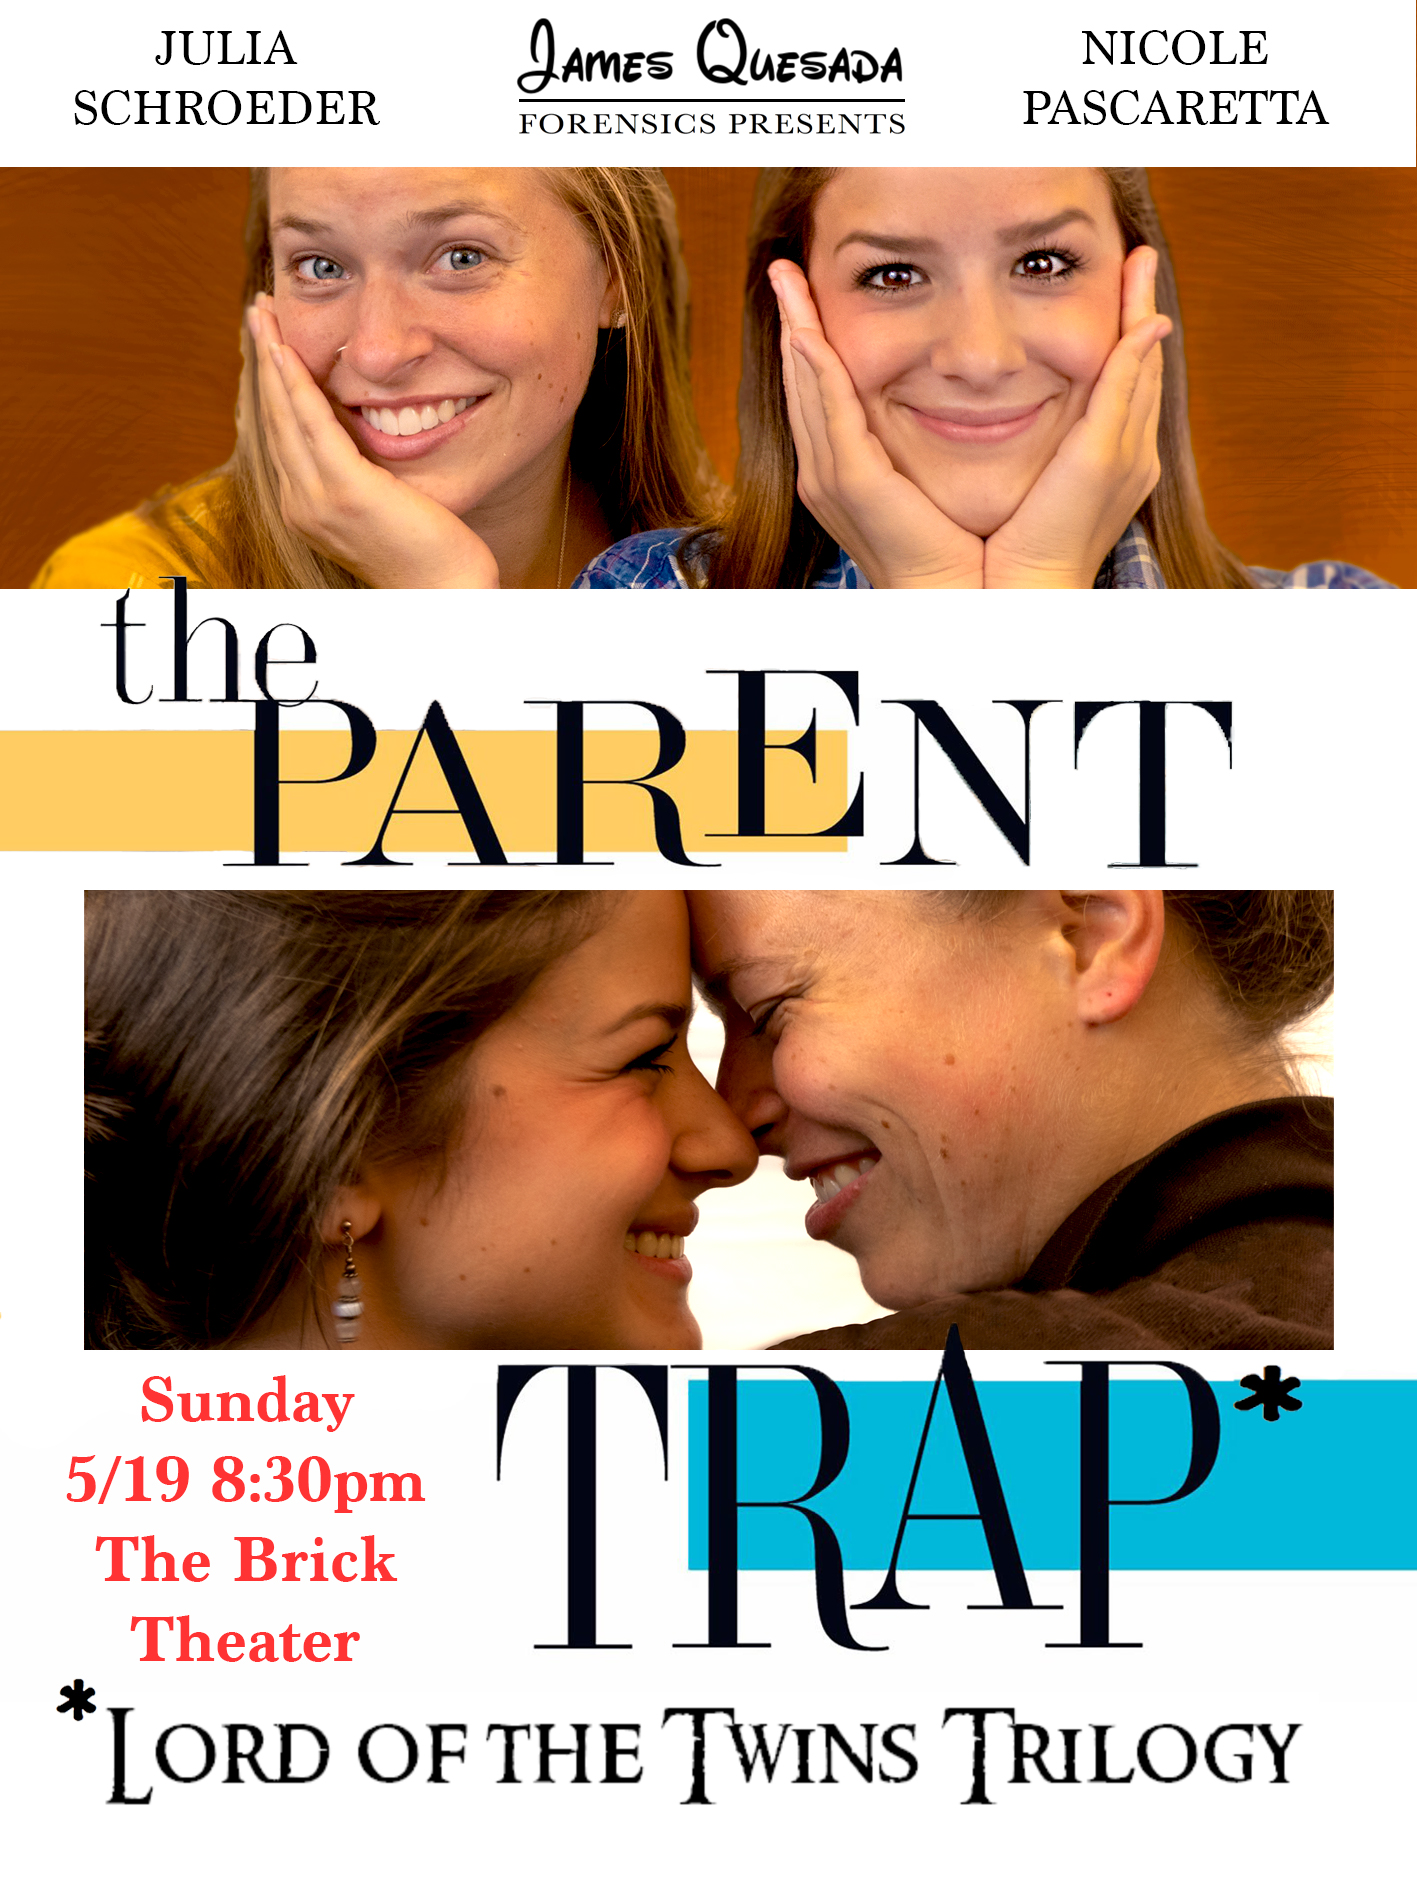 - The Parent Trap: Lord of the Twins TrilogyNicole Pascaretta and Julia Schroeder present their two-woman three-part reimagining of The Parent Trap. An incredible, high energy interpretation of the Disney classic with a Lord of The Rings twist. It's a mix of re-enacted scenes from The Parent Trap, commentary on seeing the movie through the eyes of a young girl and how Nicole and Julia's feelings have changed (or stayed the same) as they go back and watch it as adults. Sometimes with biting commentary, sometimes with heartfelt nostalgia, and with themes of Lord of the Rings mixed in to really elevate the storytelling.This show has been described as